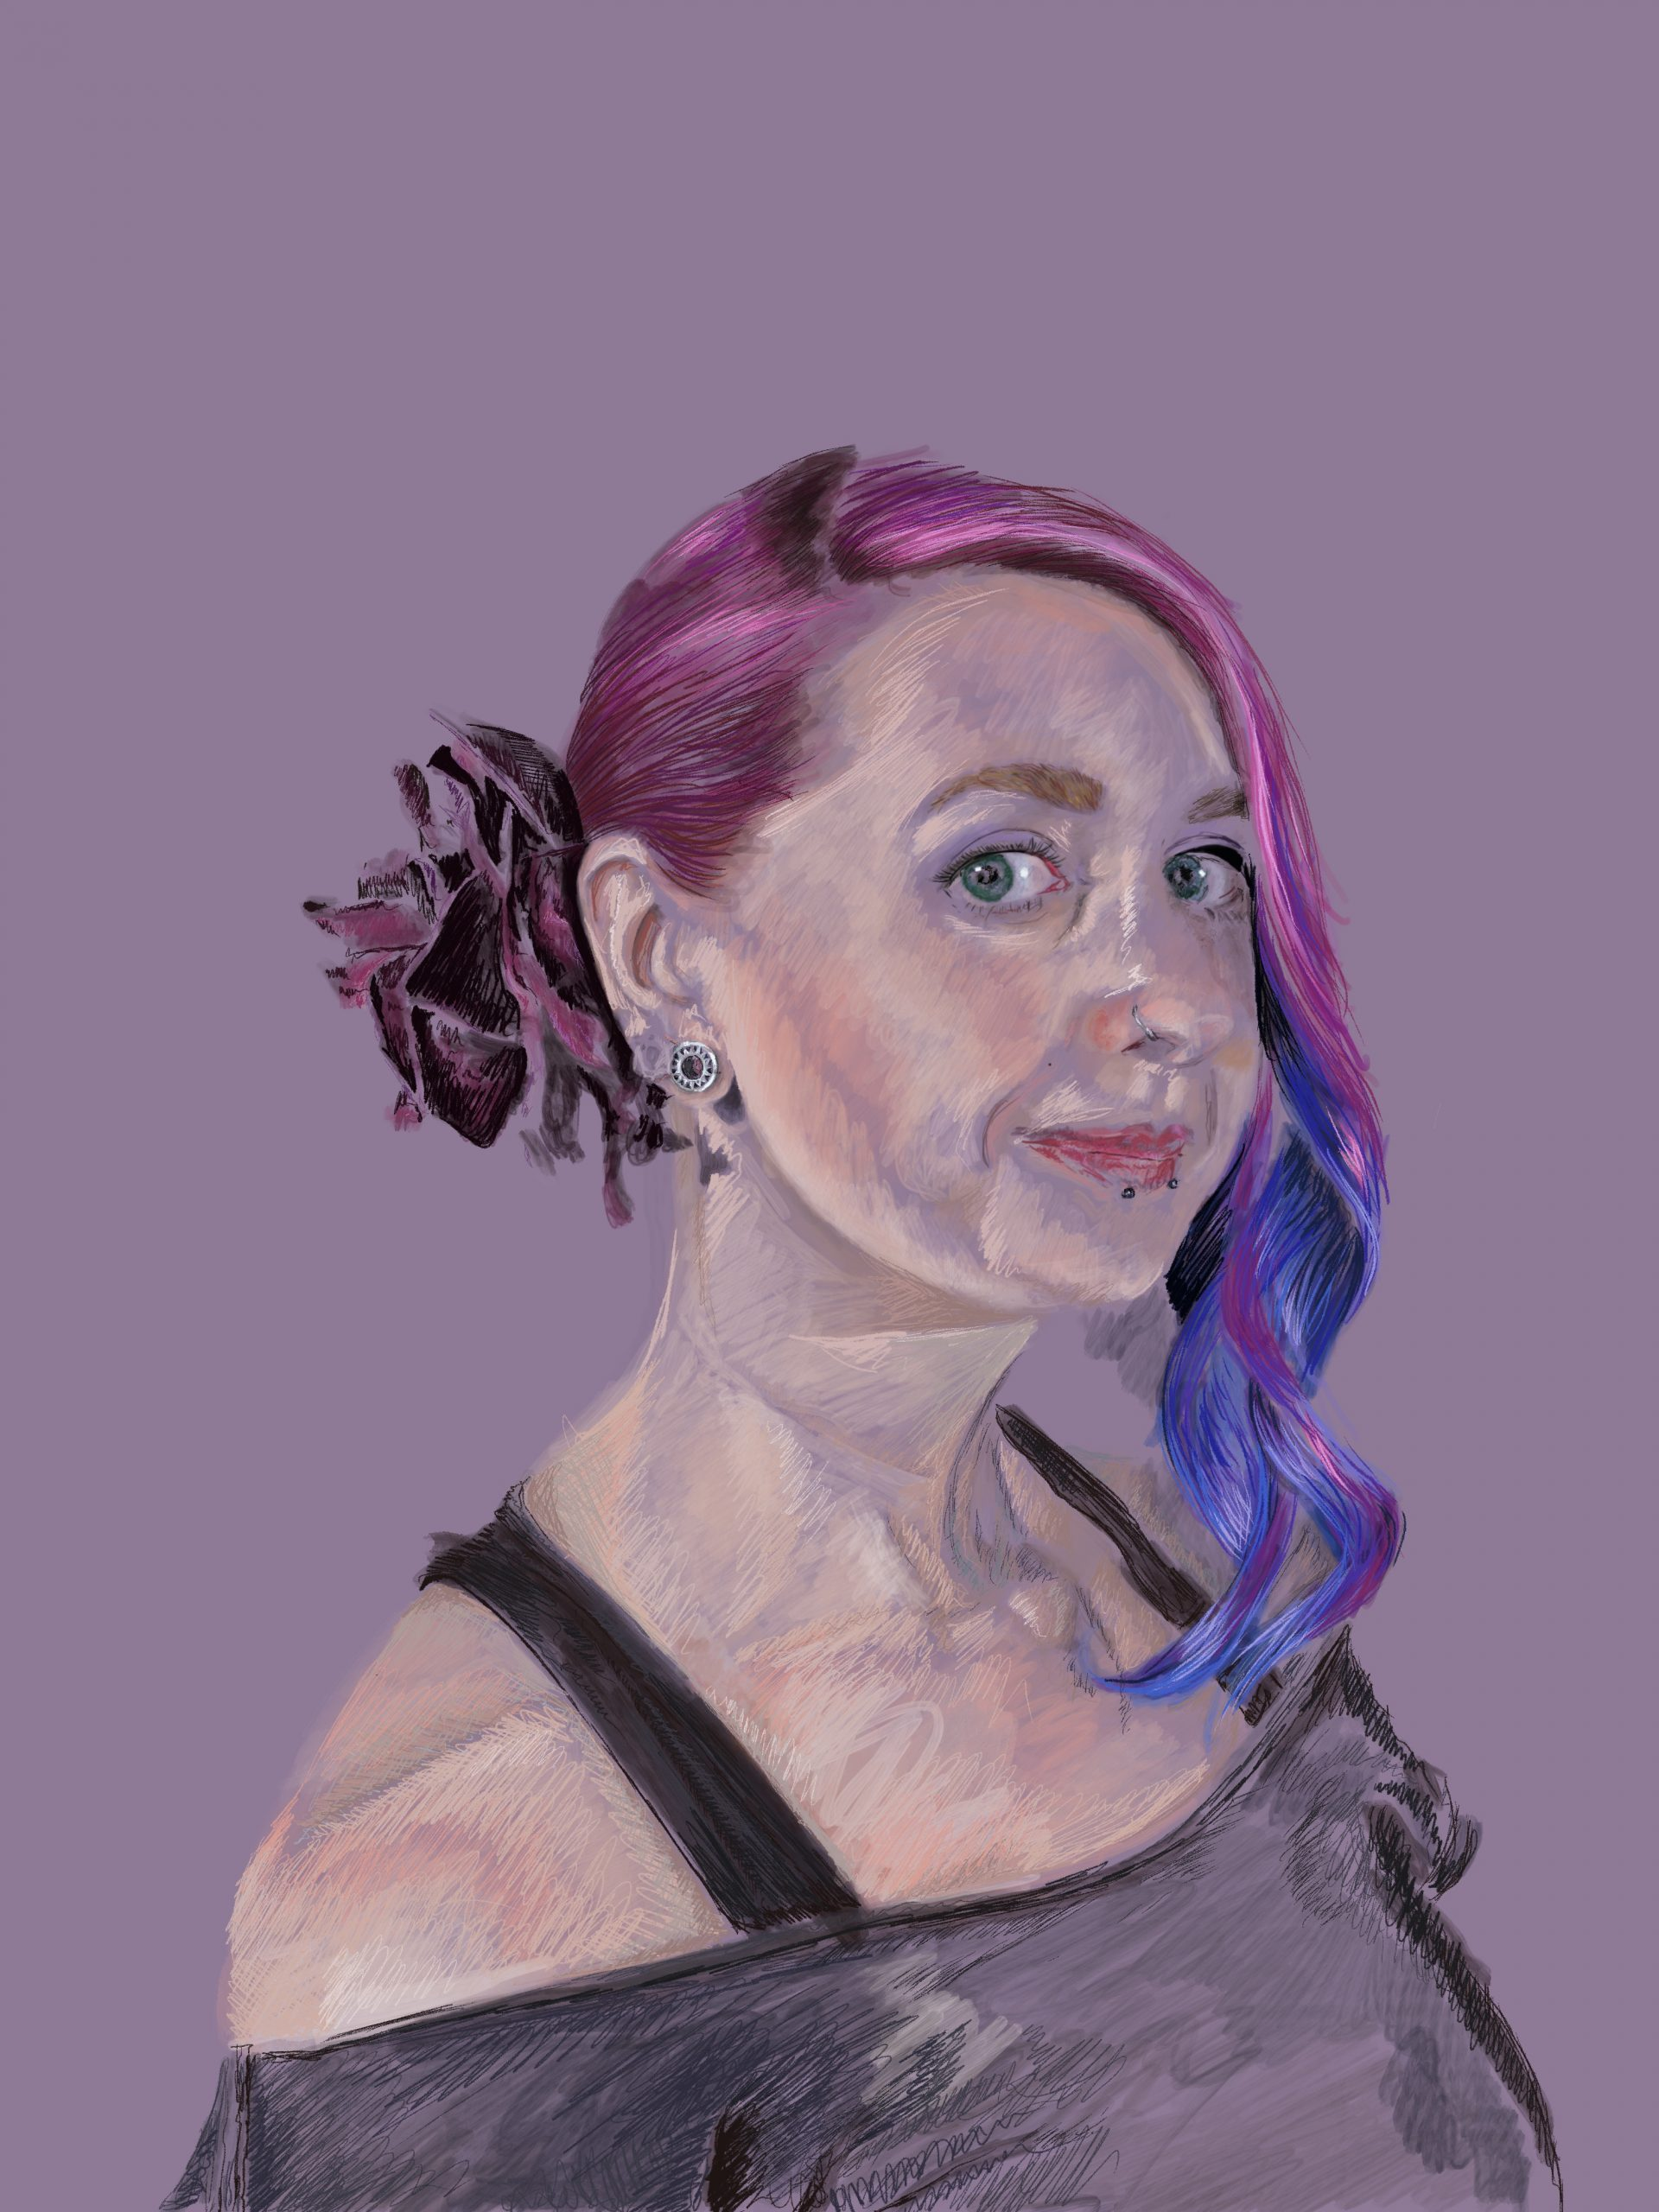 Self portrait. Pink and purple hair and a lilac background